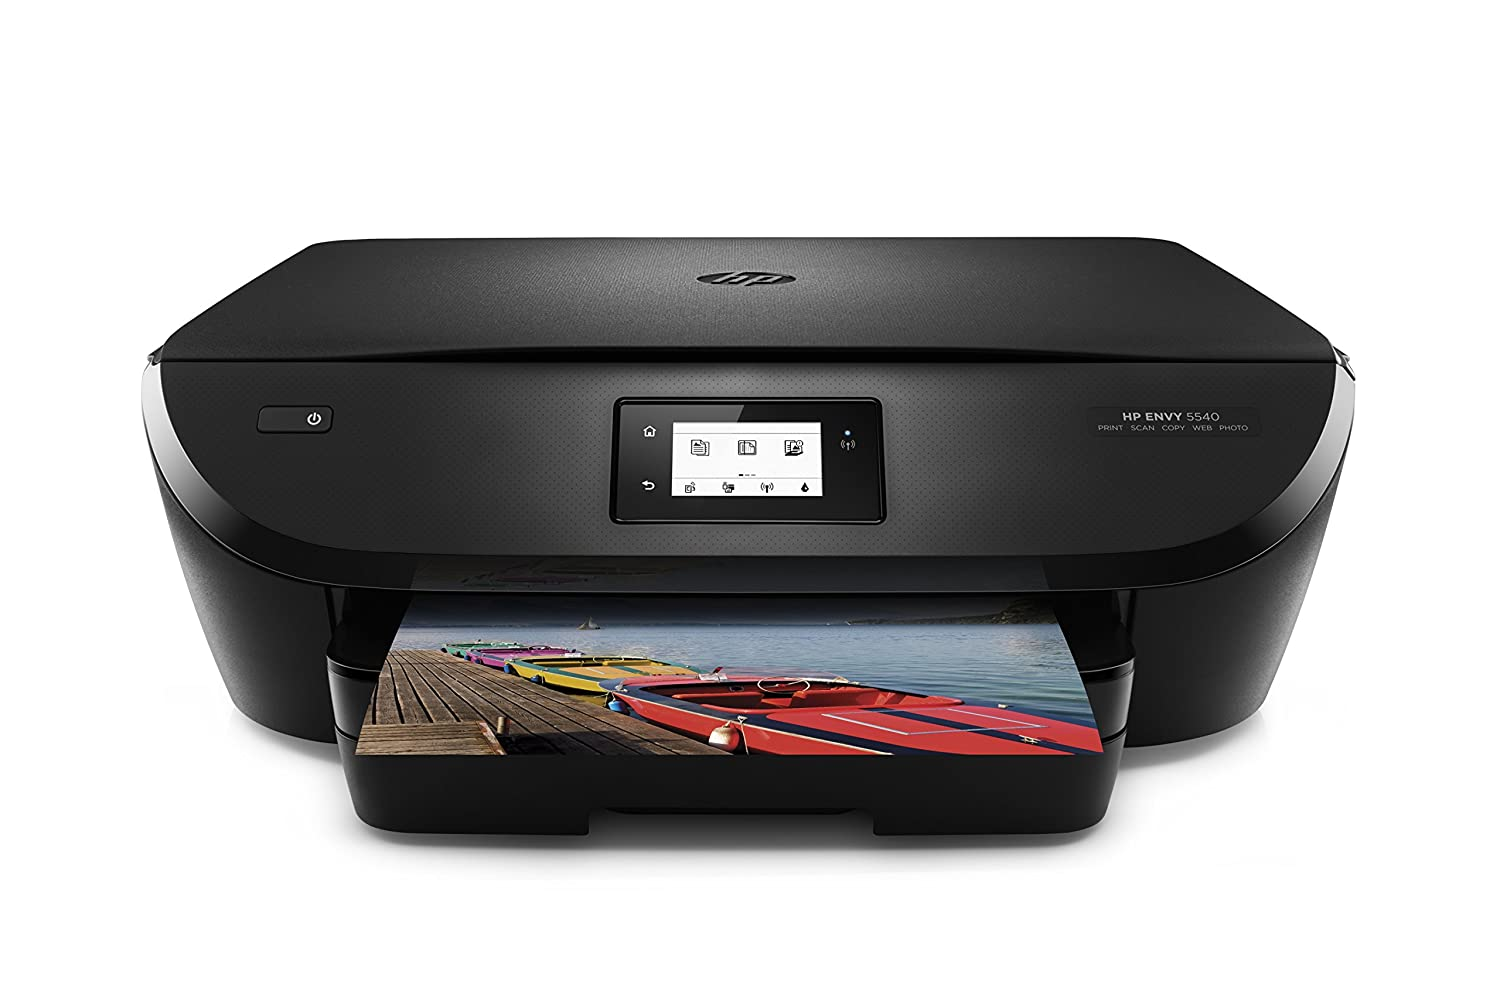 HP Envy 5540 - Impresora multifunción inalámbrica (Wi-Fi, b/n 12 ppm, Color 8 ppm), Color Negro